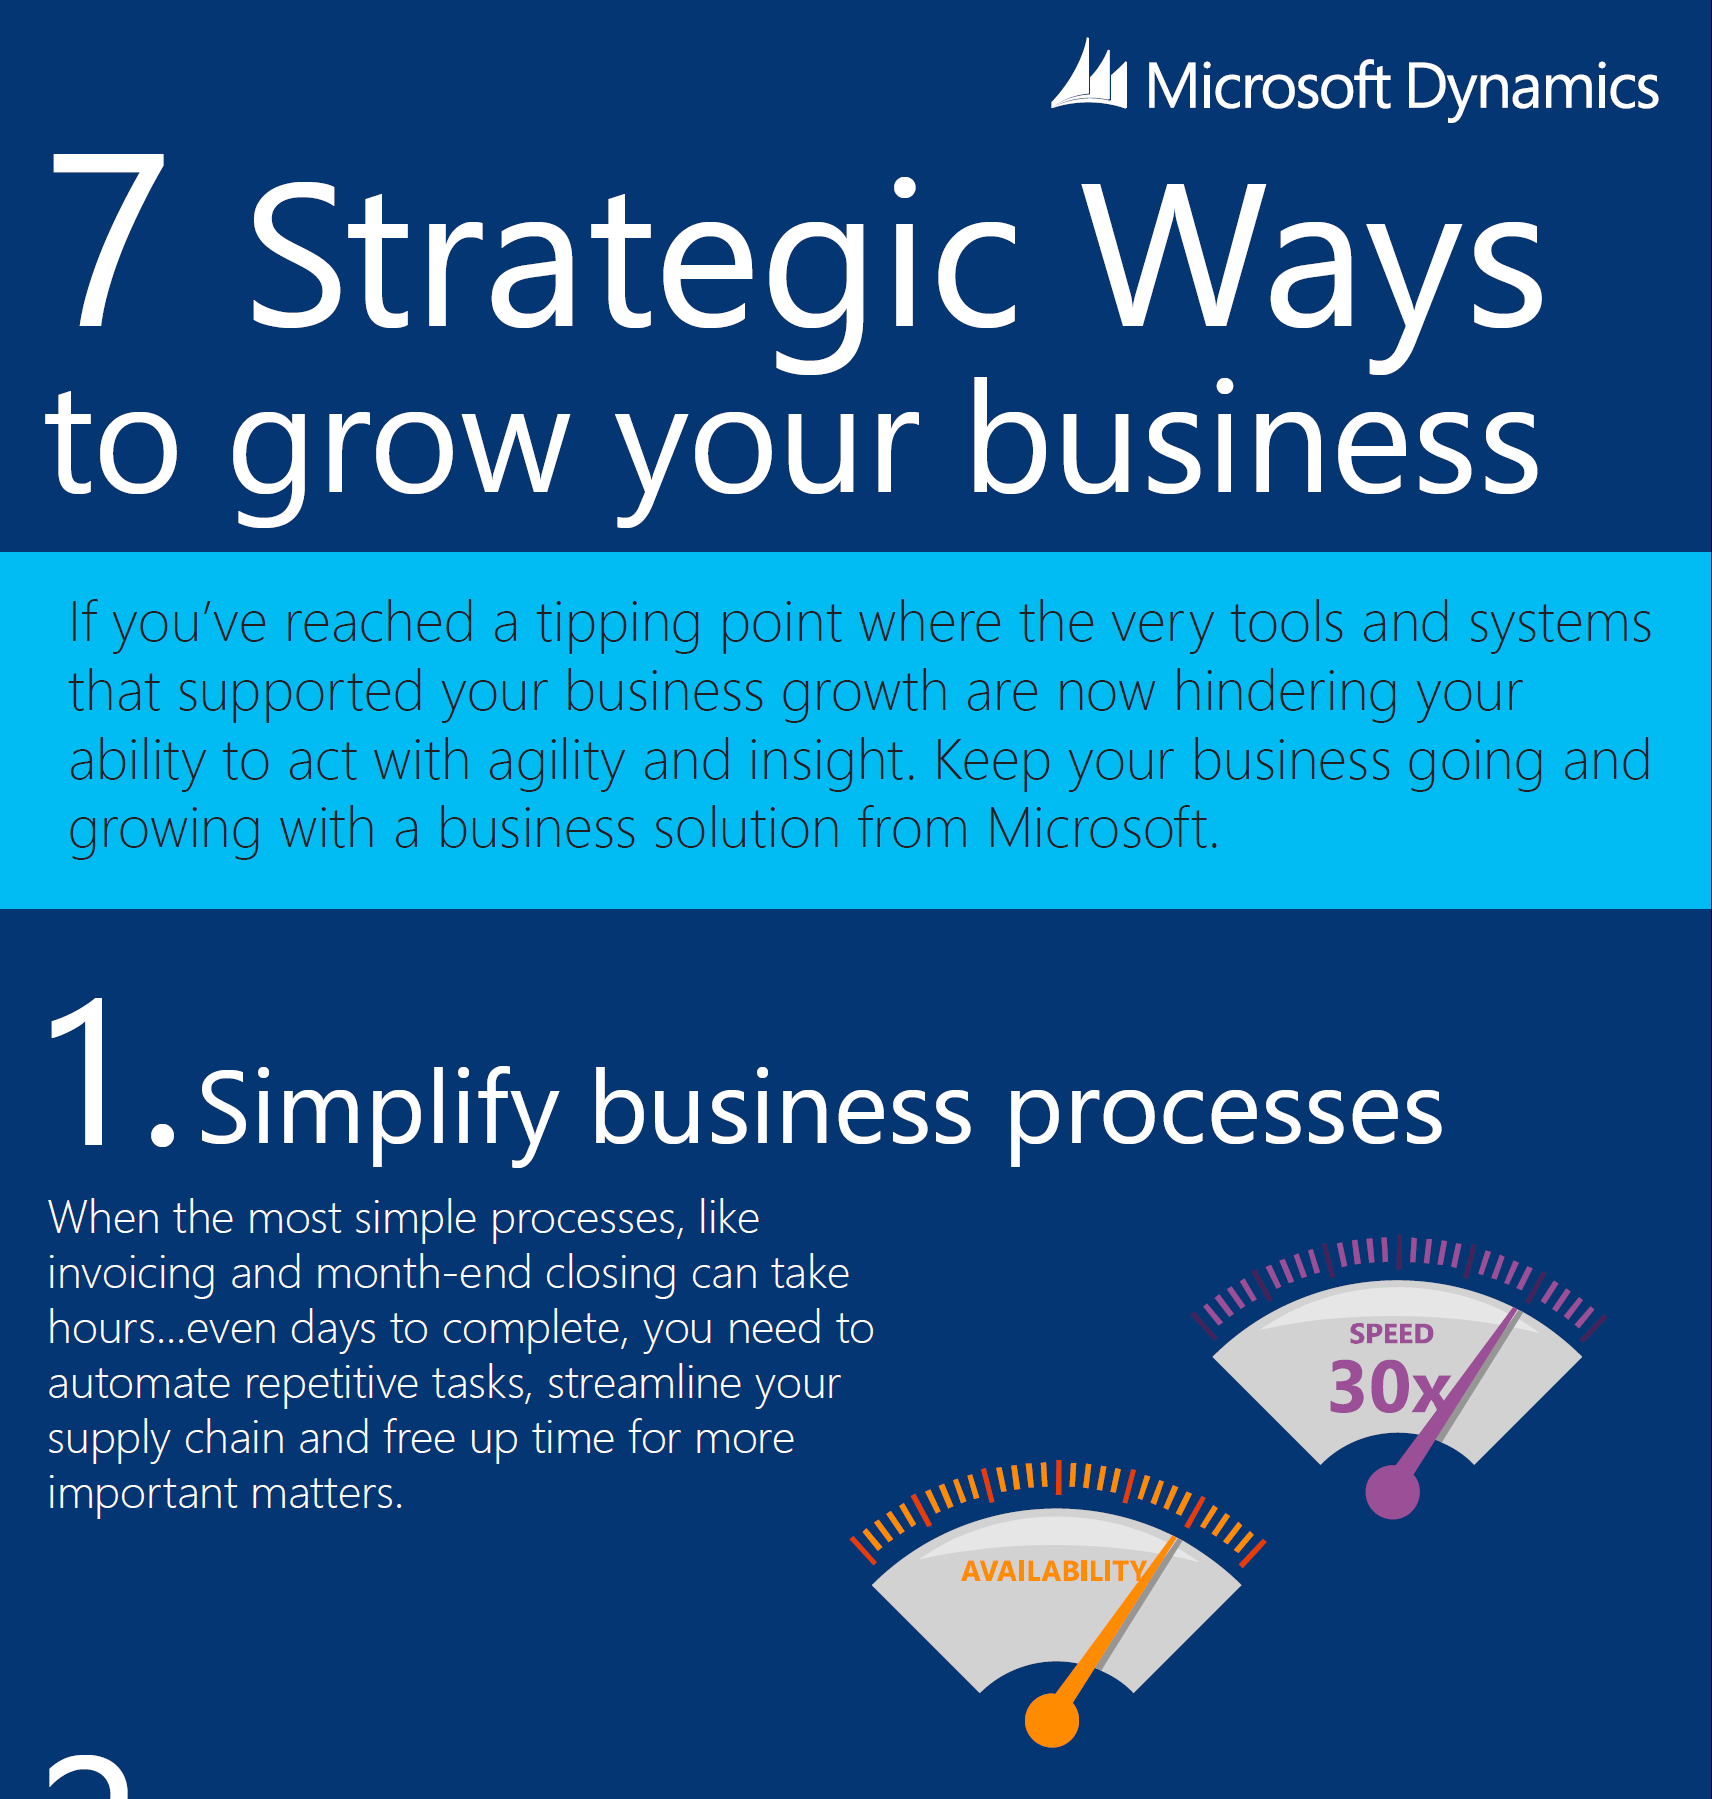 MS - NAV -ERP in SMB Infographic_7 Strategic Ways to Grow Your Business_Final_June 2014